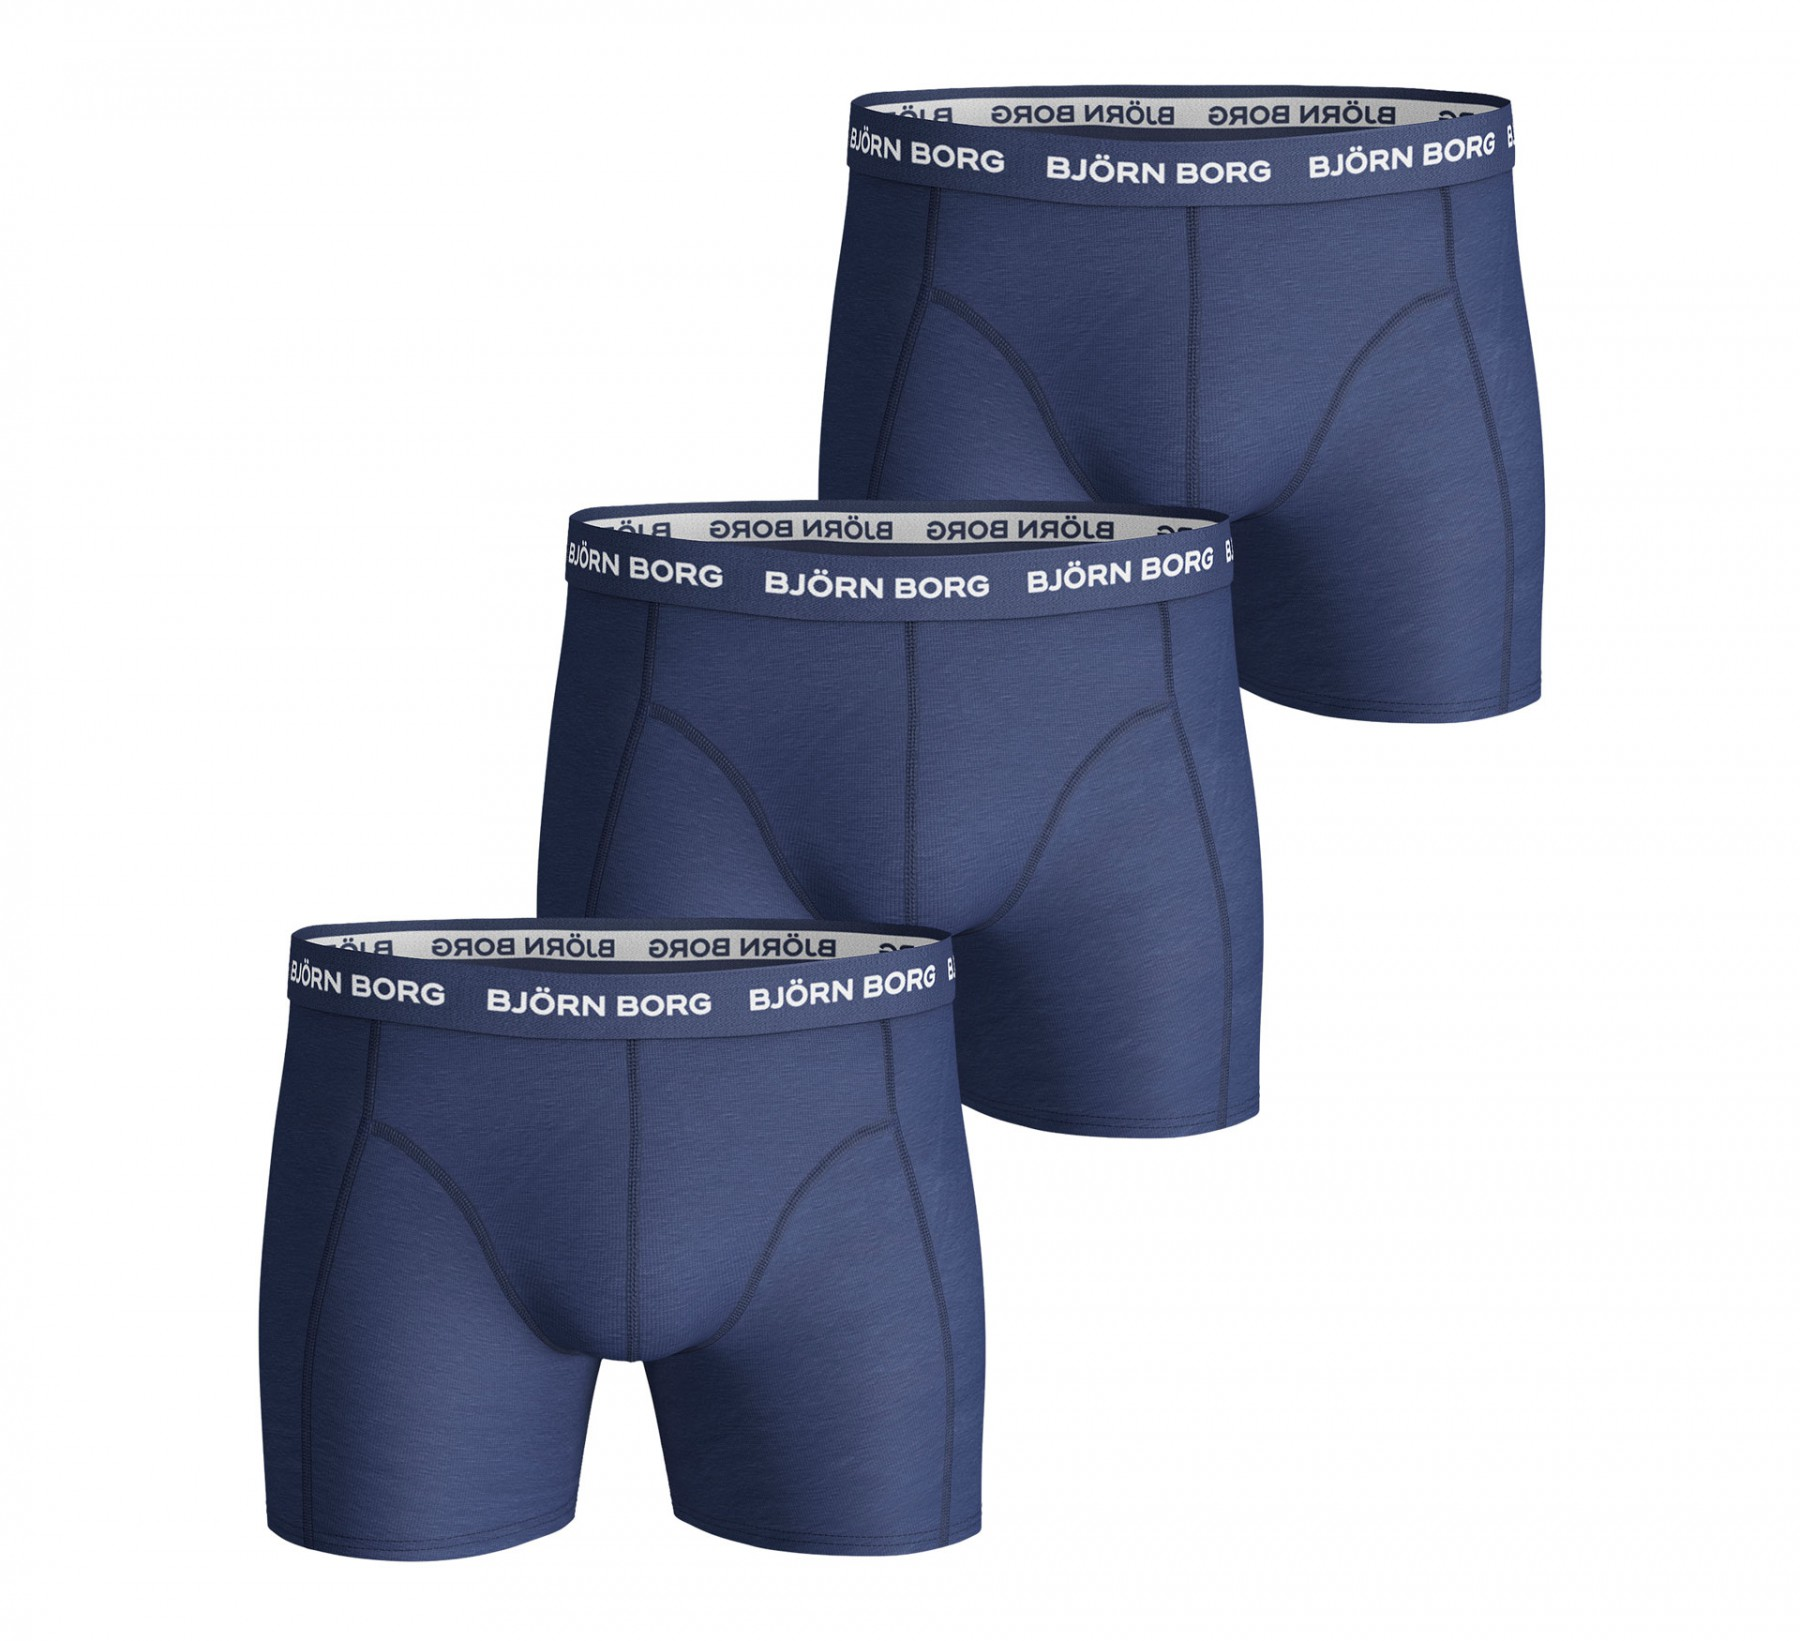 3-Pack Boxers Solids Navy